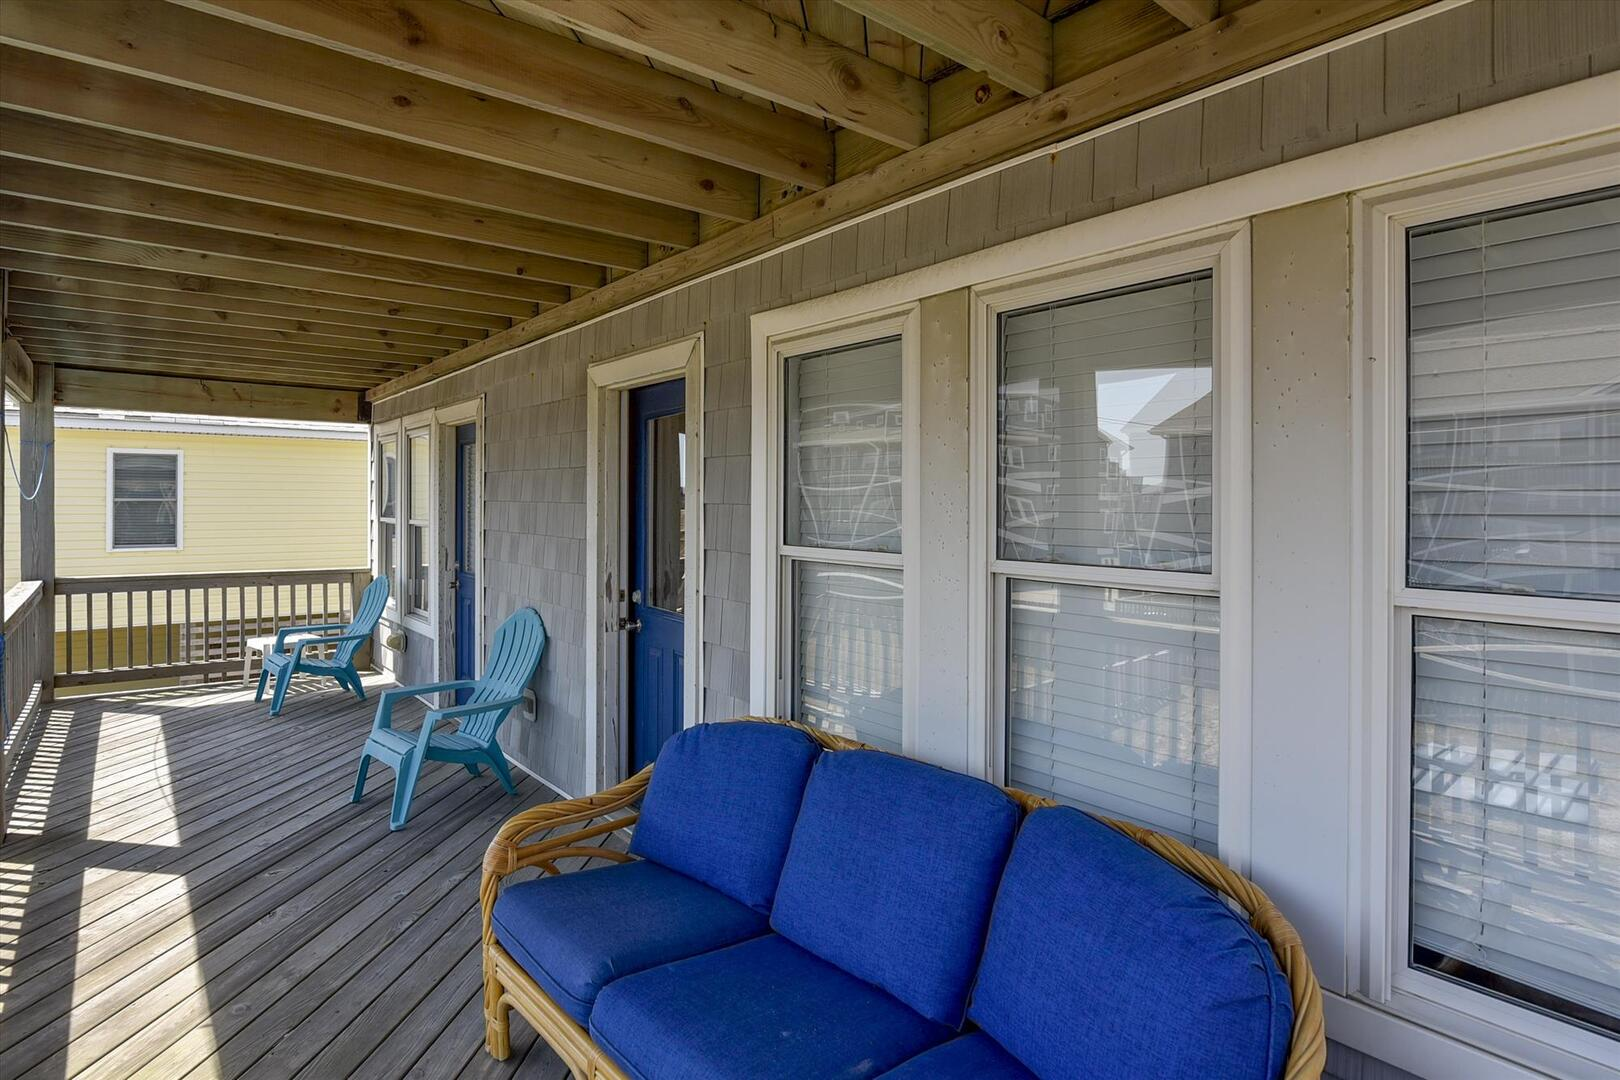 Middle Level,Deck,